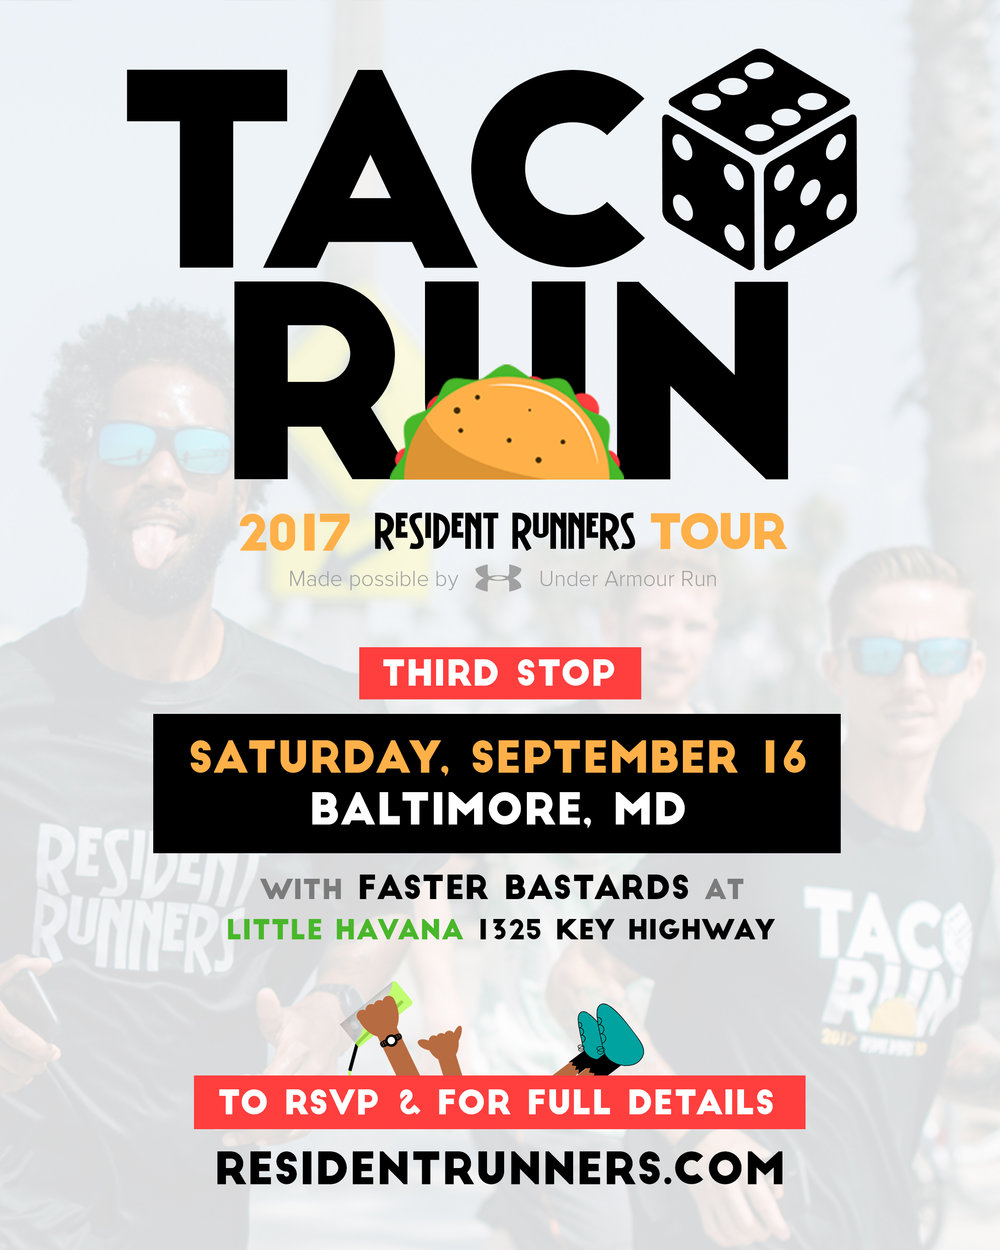 taco_run_tour_flyer_baltimore_v1.jpg